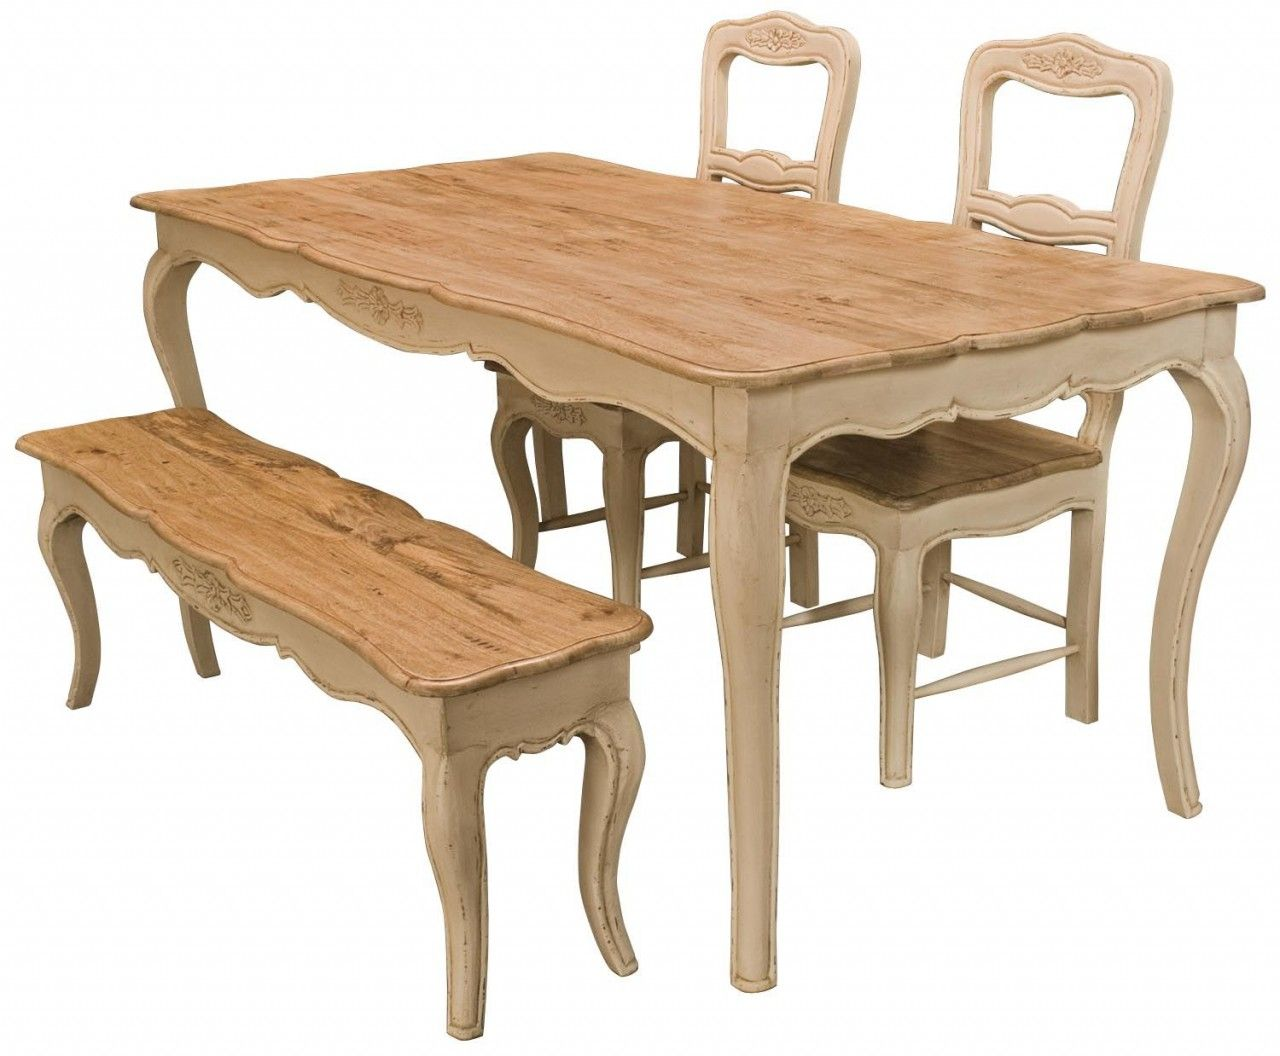 Kitchen Table Bench Maple Done By Experts Furnishings Farmhouse